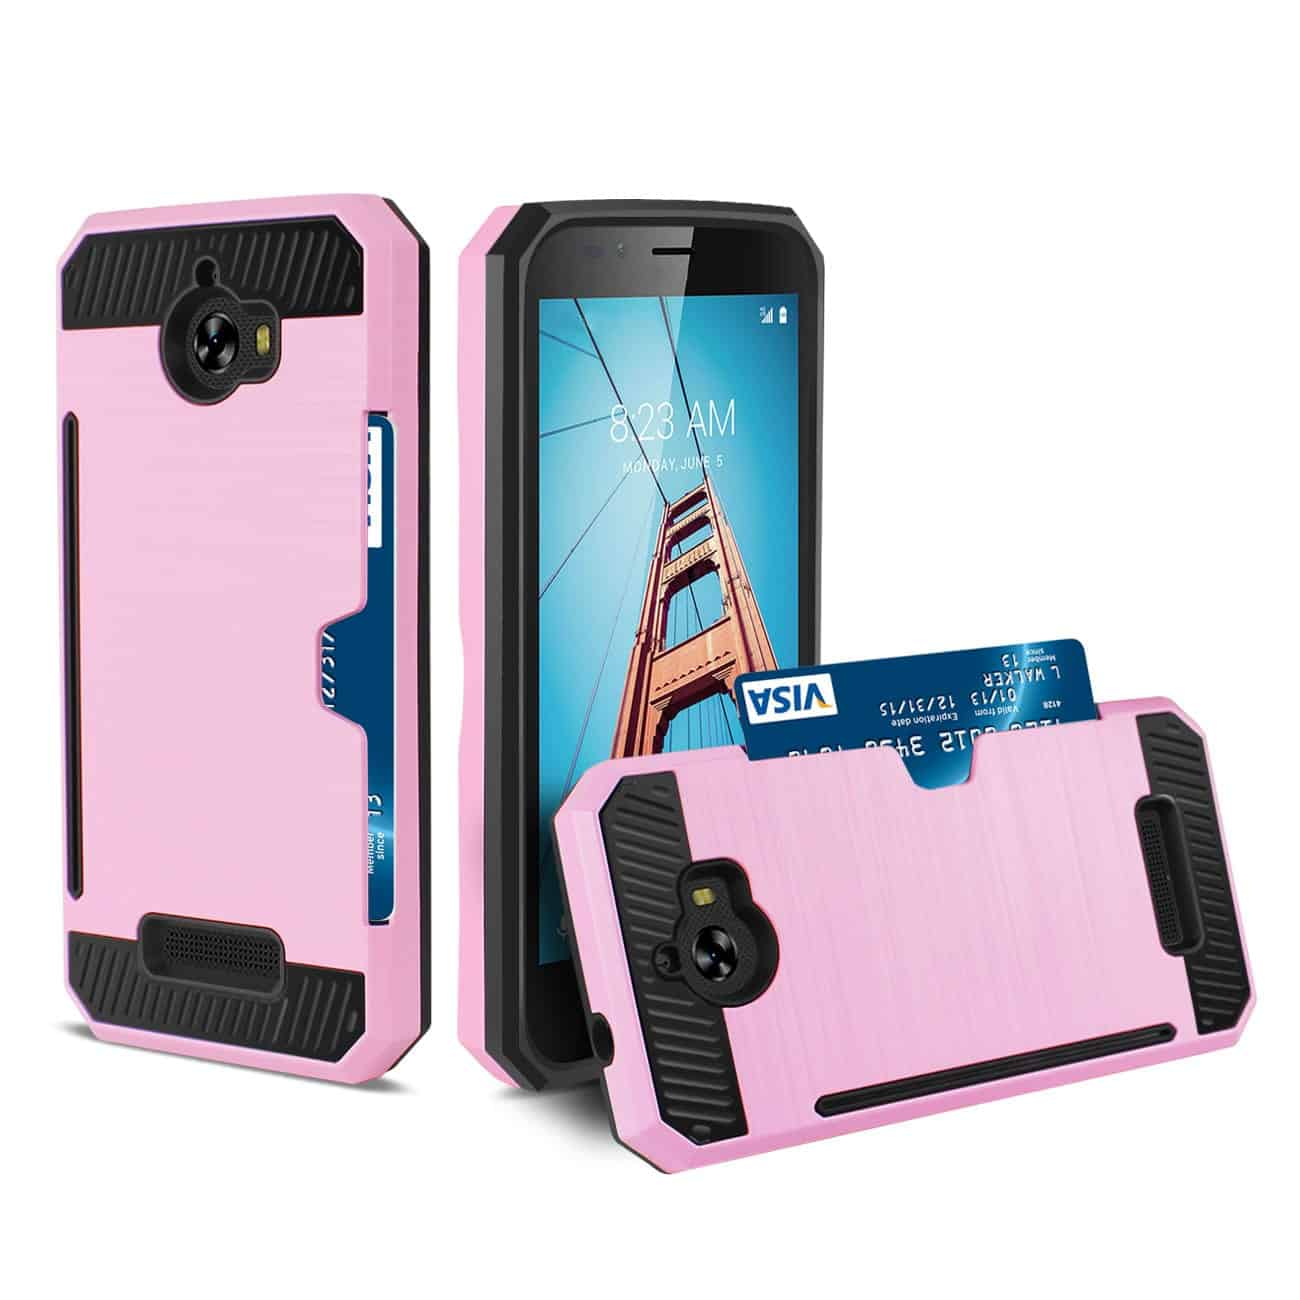 COOLPAD DEFIANT SLIM ARMOR HYBRID CASE WITH CARD HOLDER IN PINK